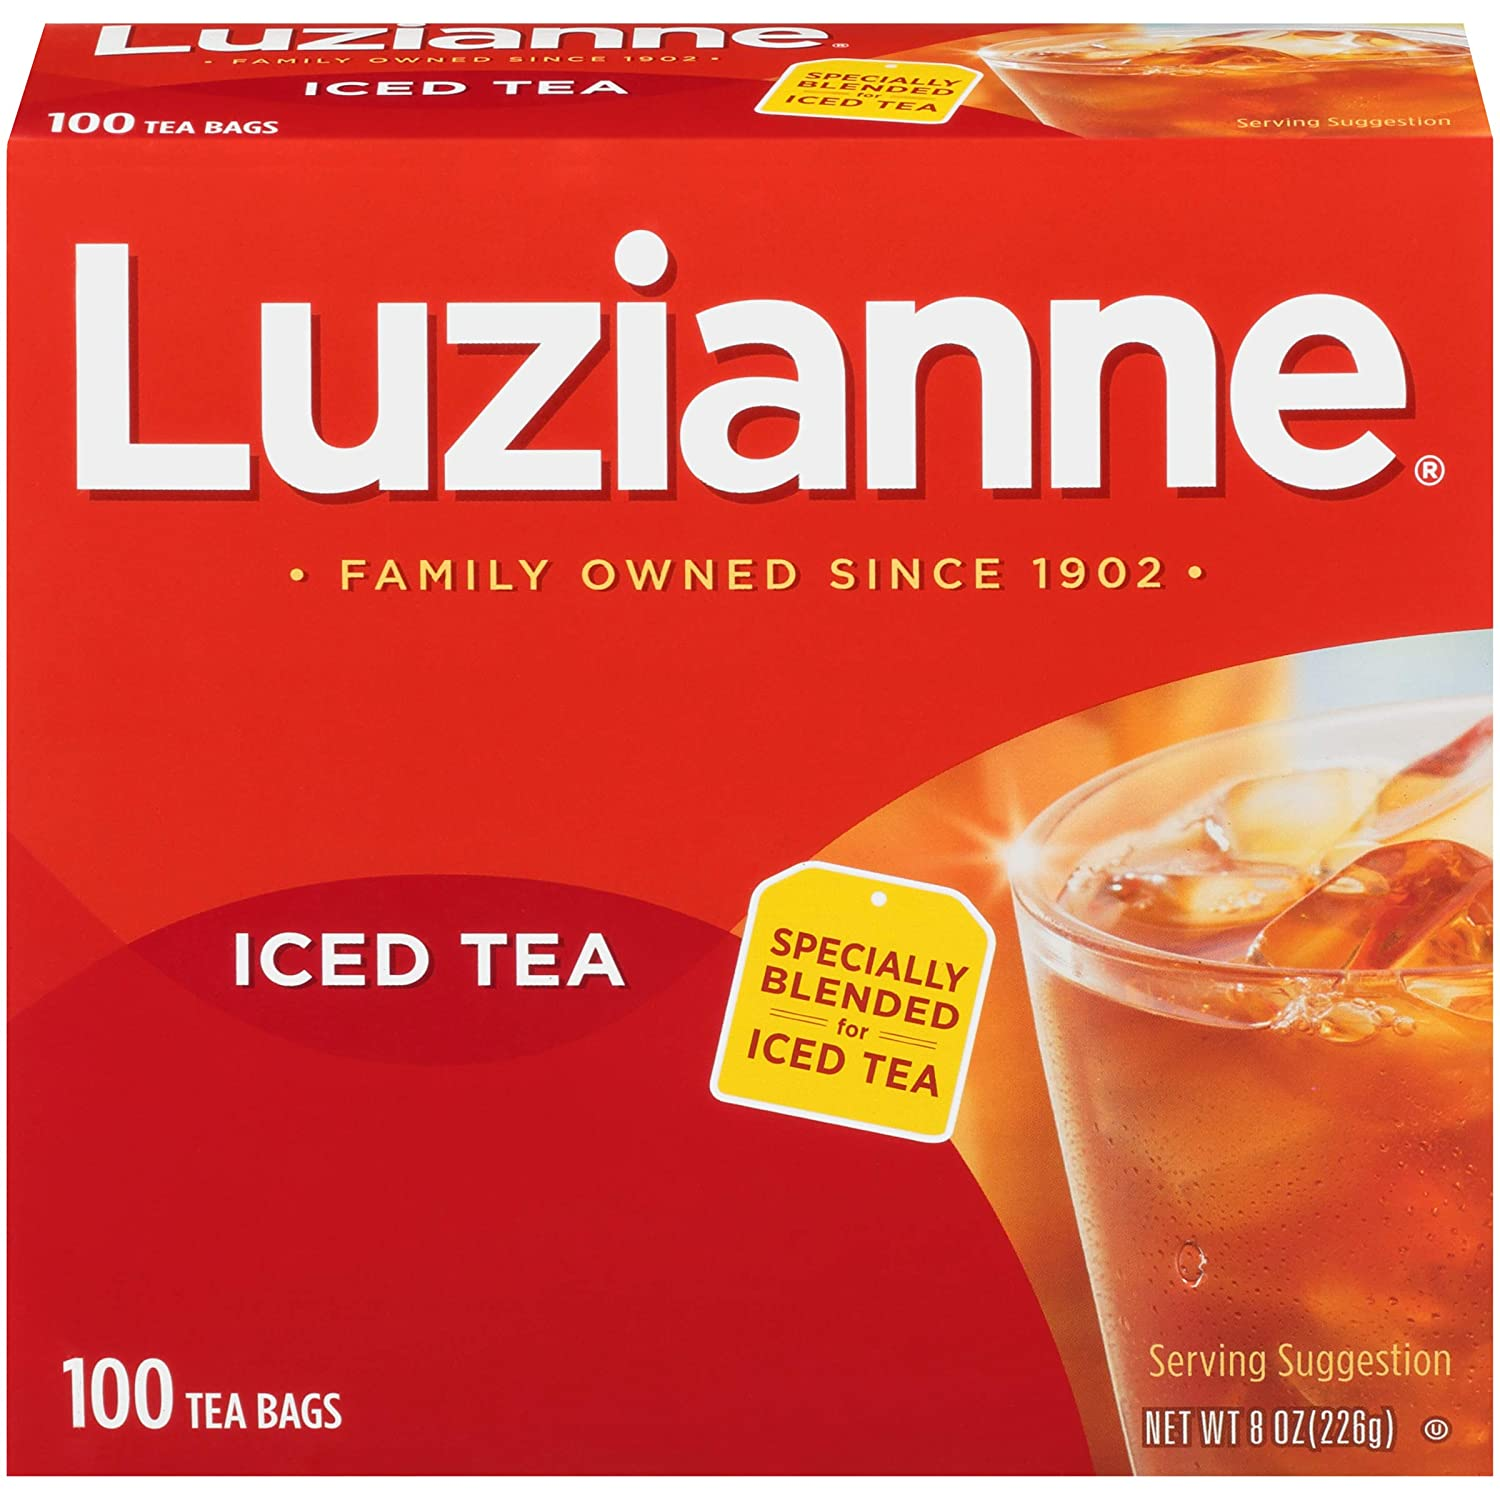 Luzianne Specially Blended for Iced Tea Bags, 100 Count